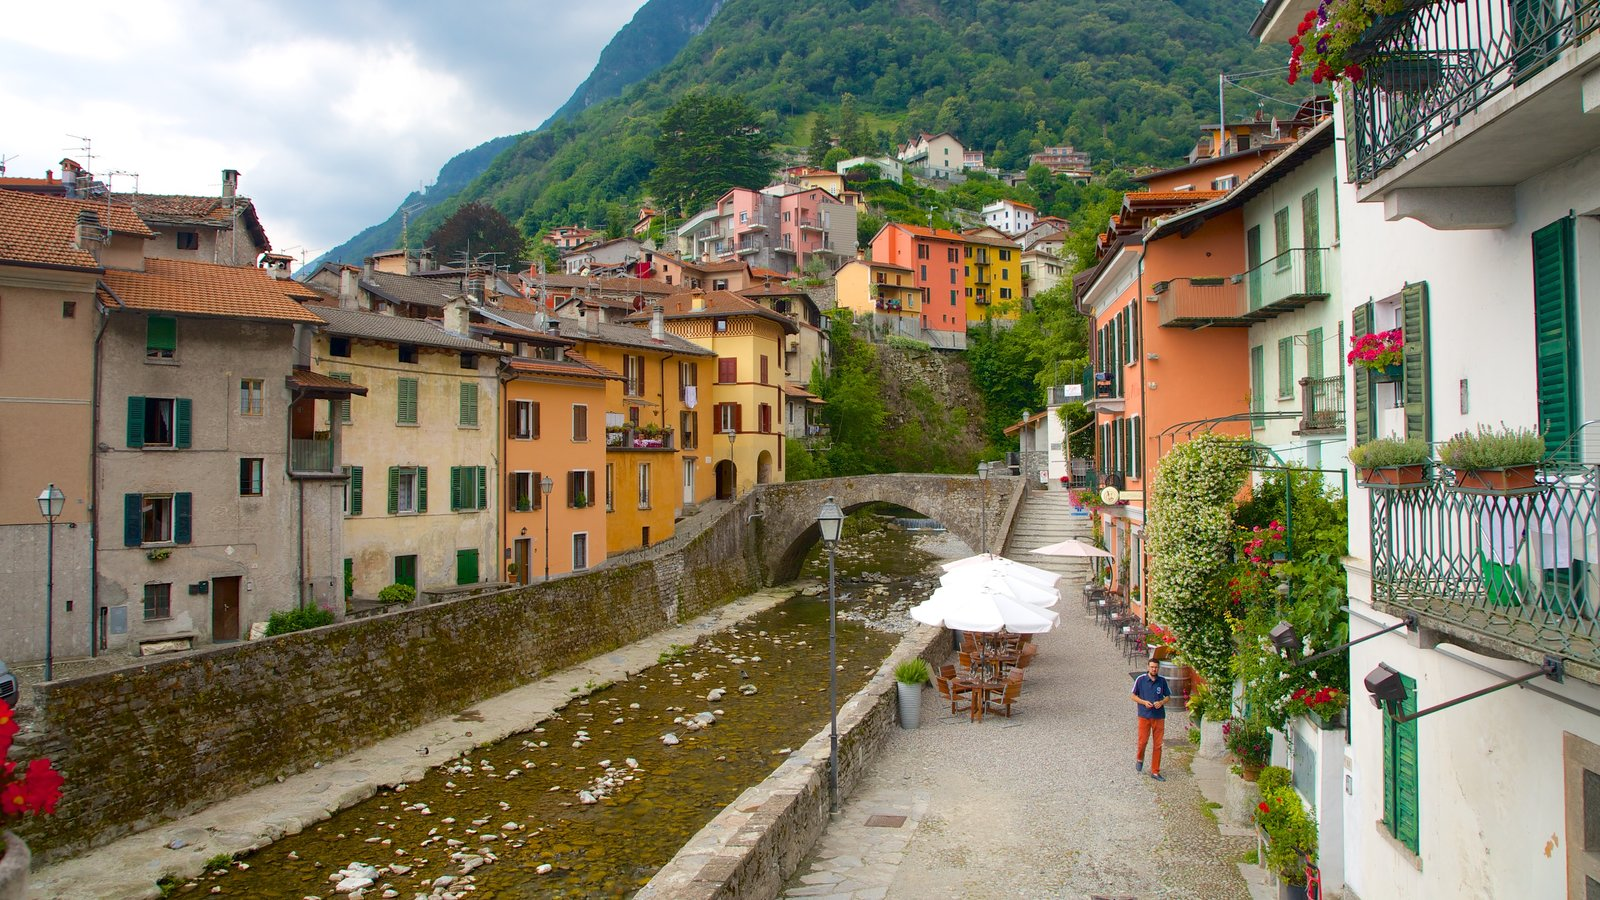 Argegno which includes a small town or village